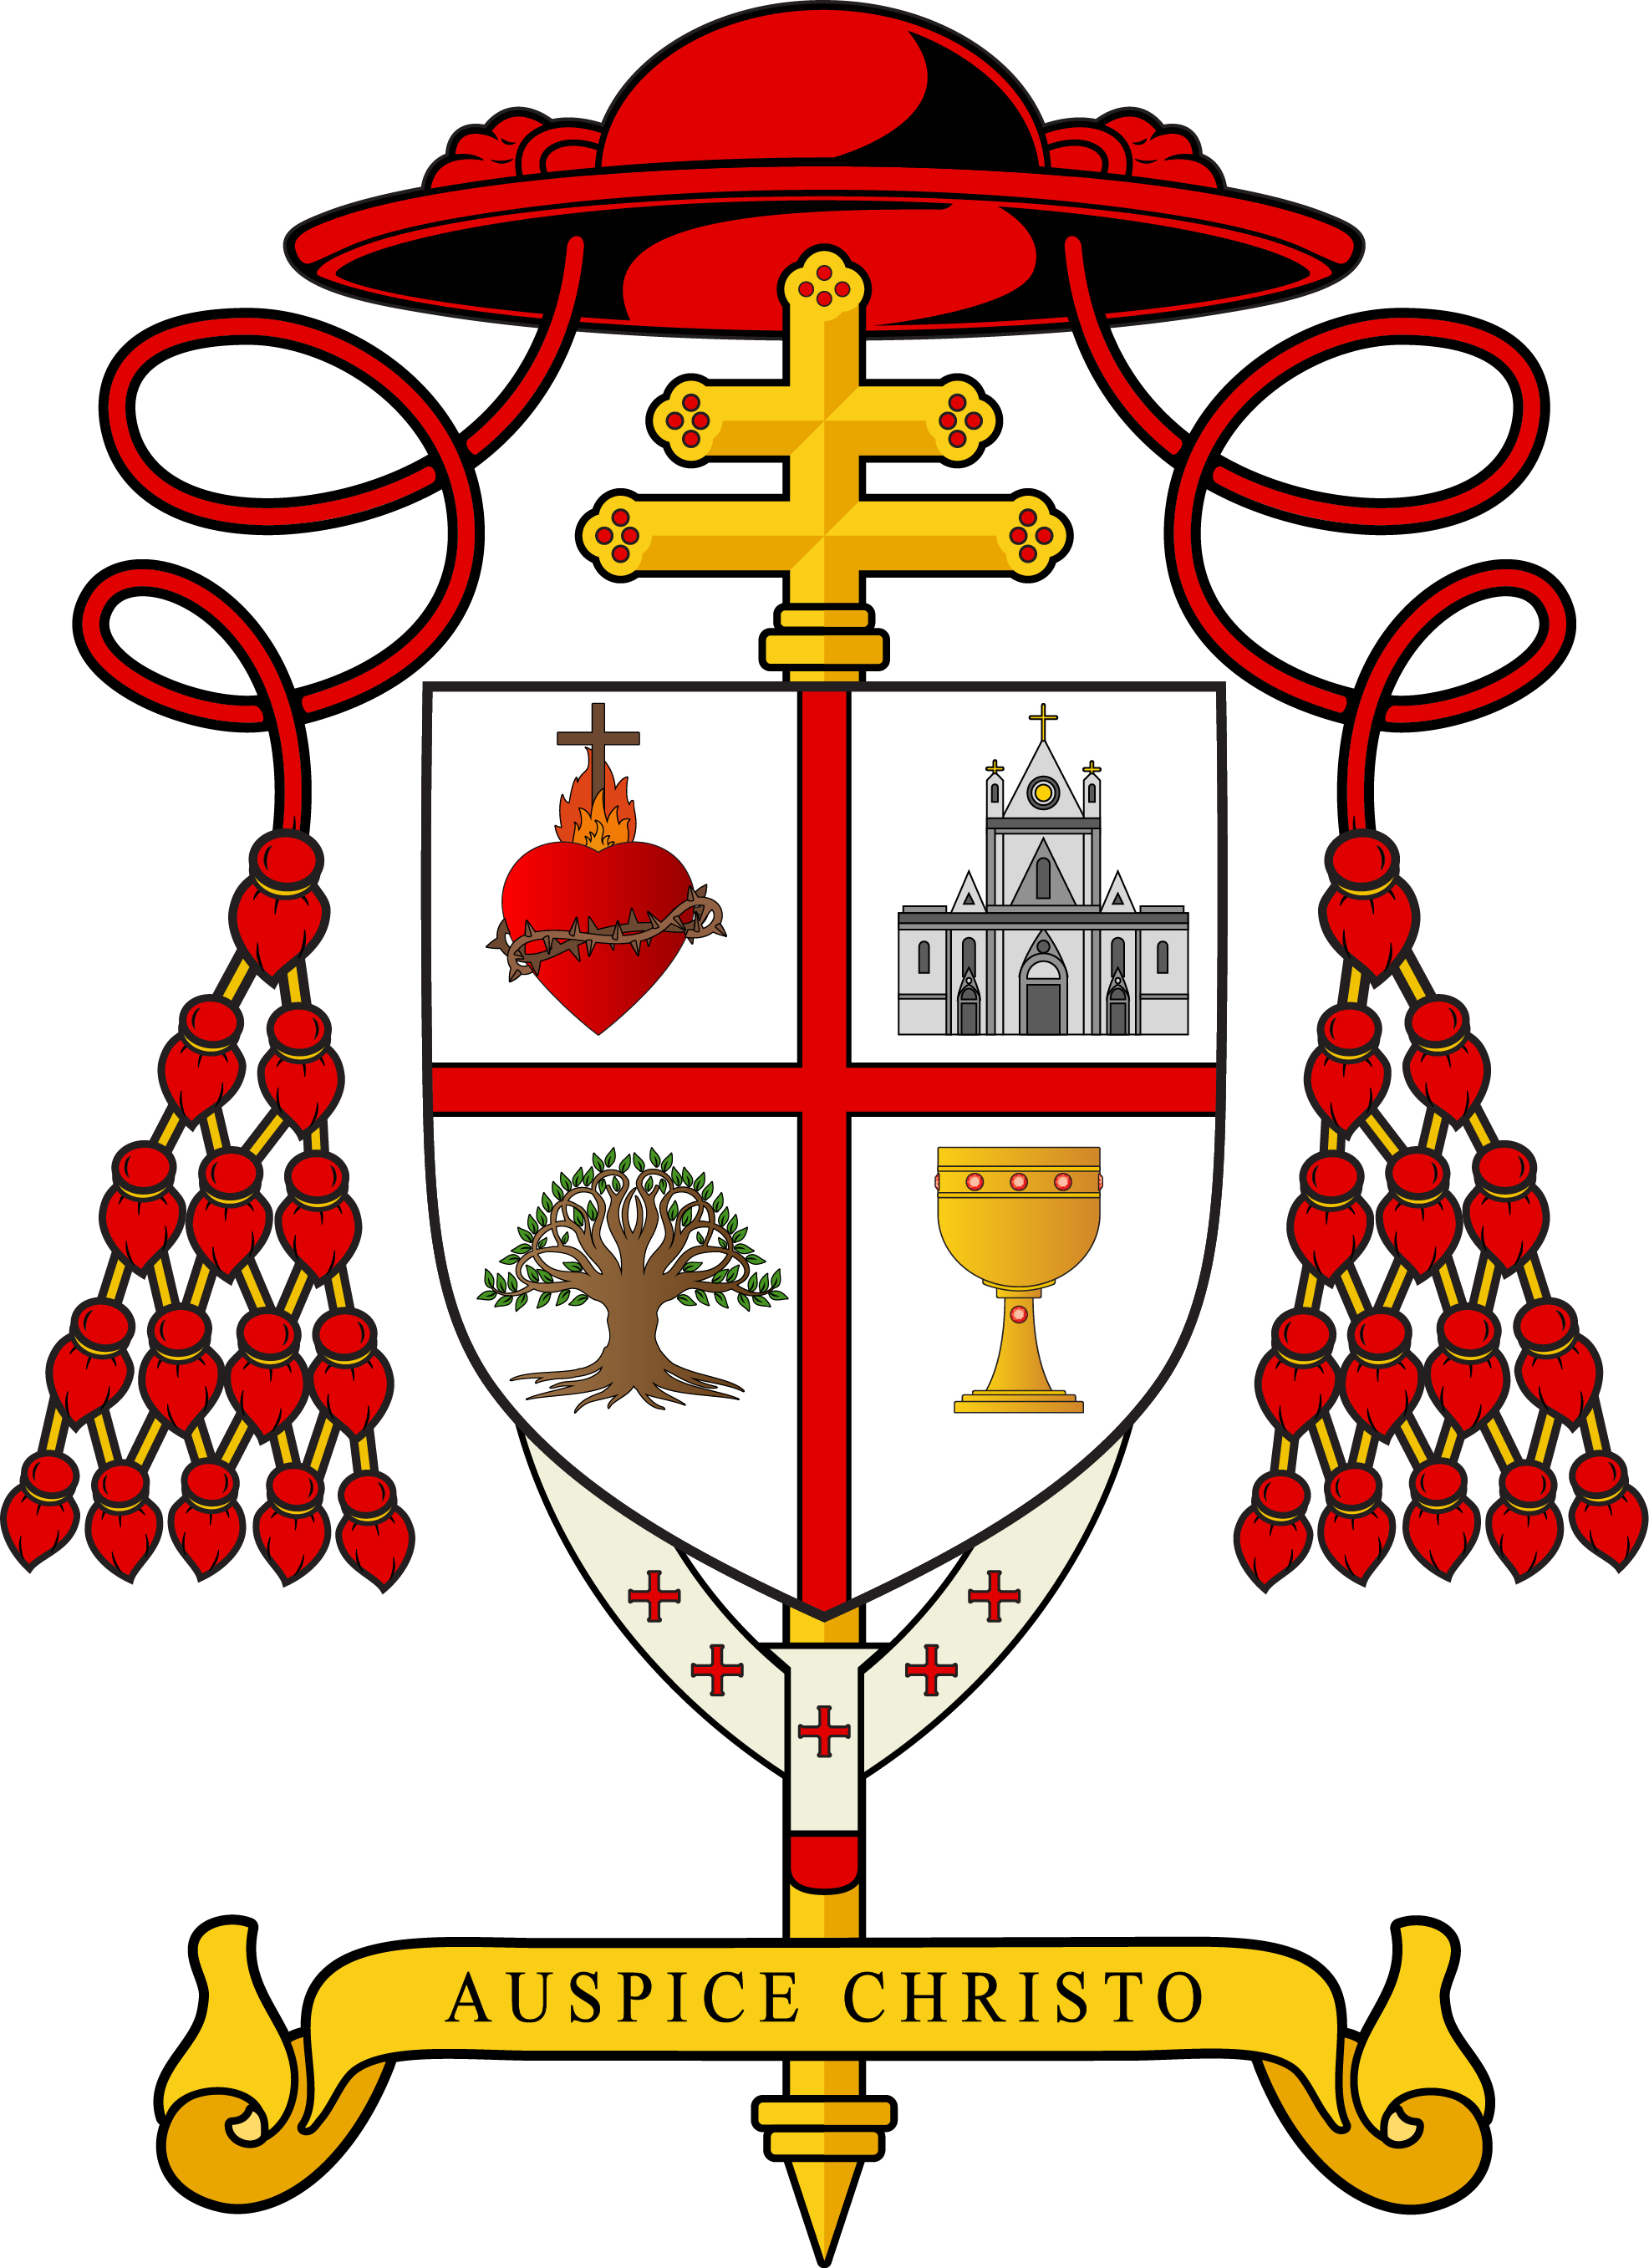 Archdiocese of the Sacred Heart